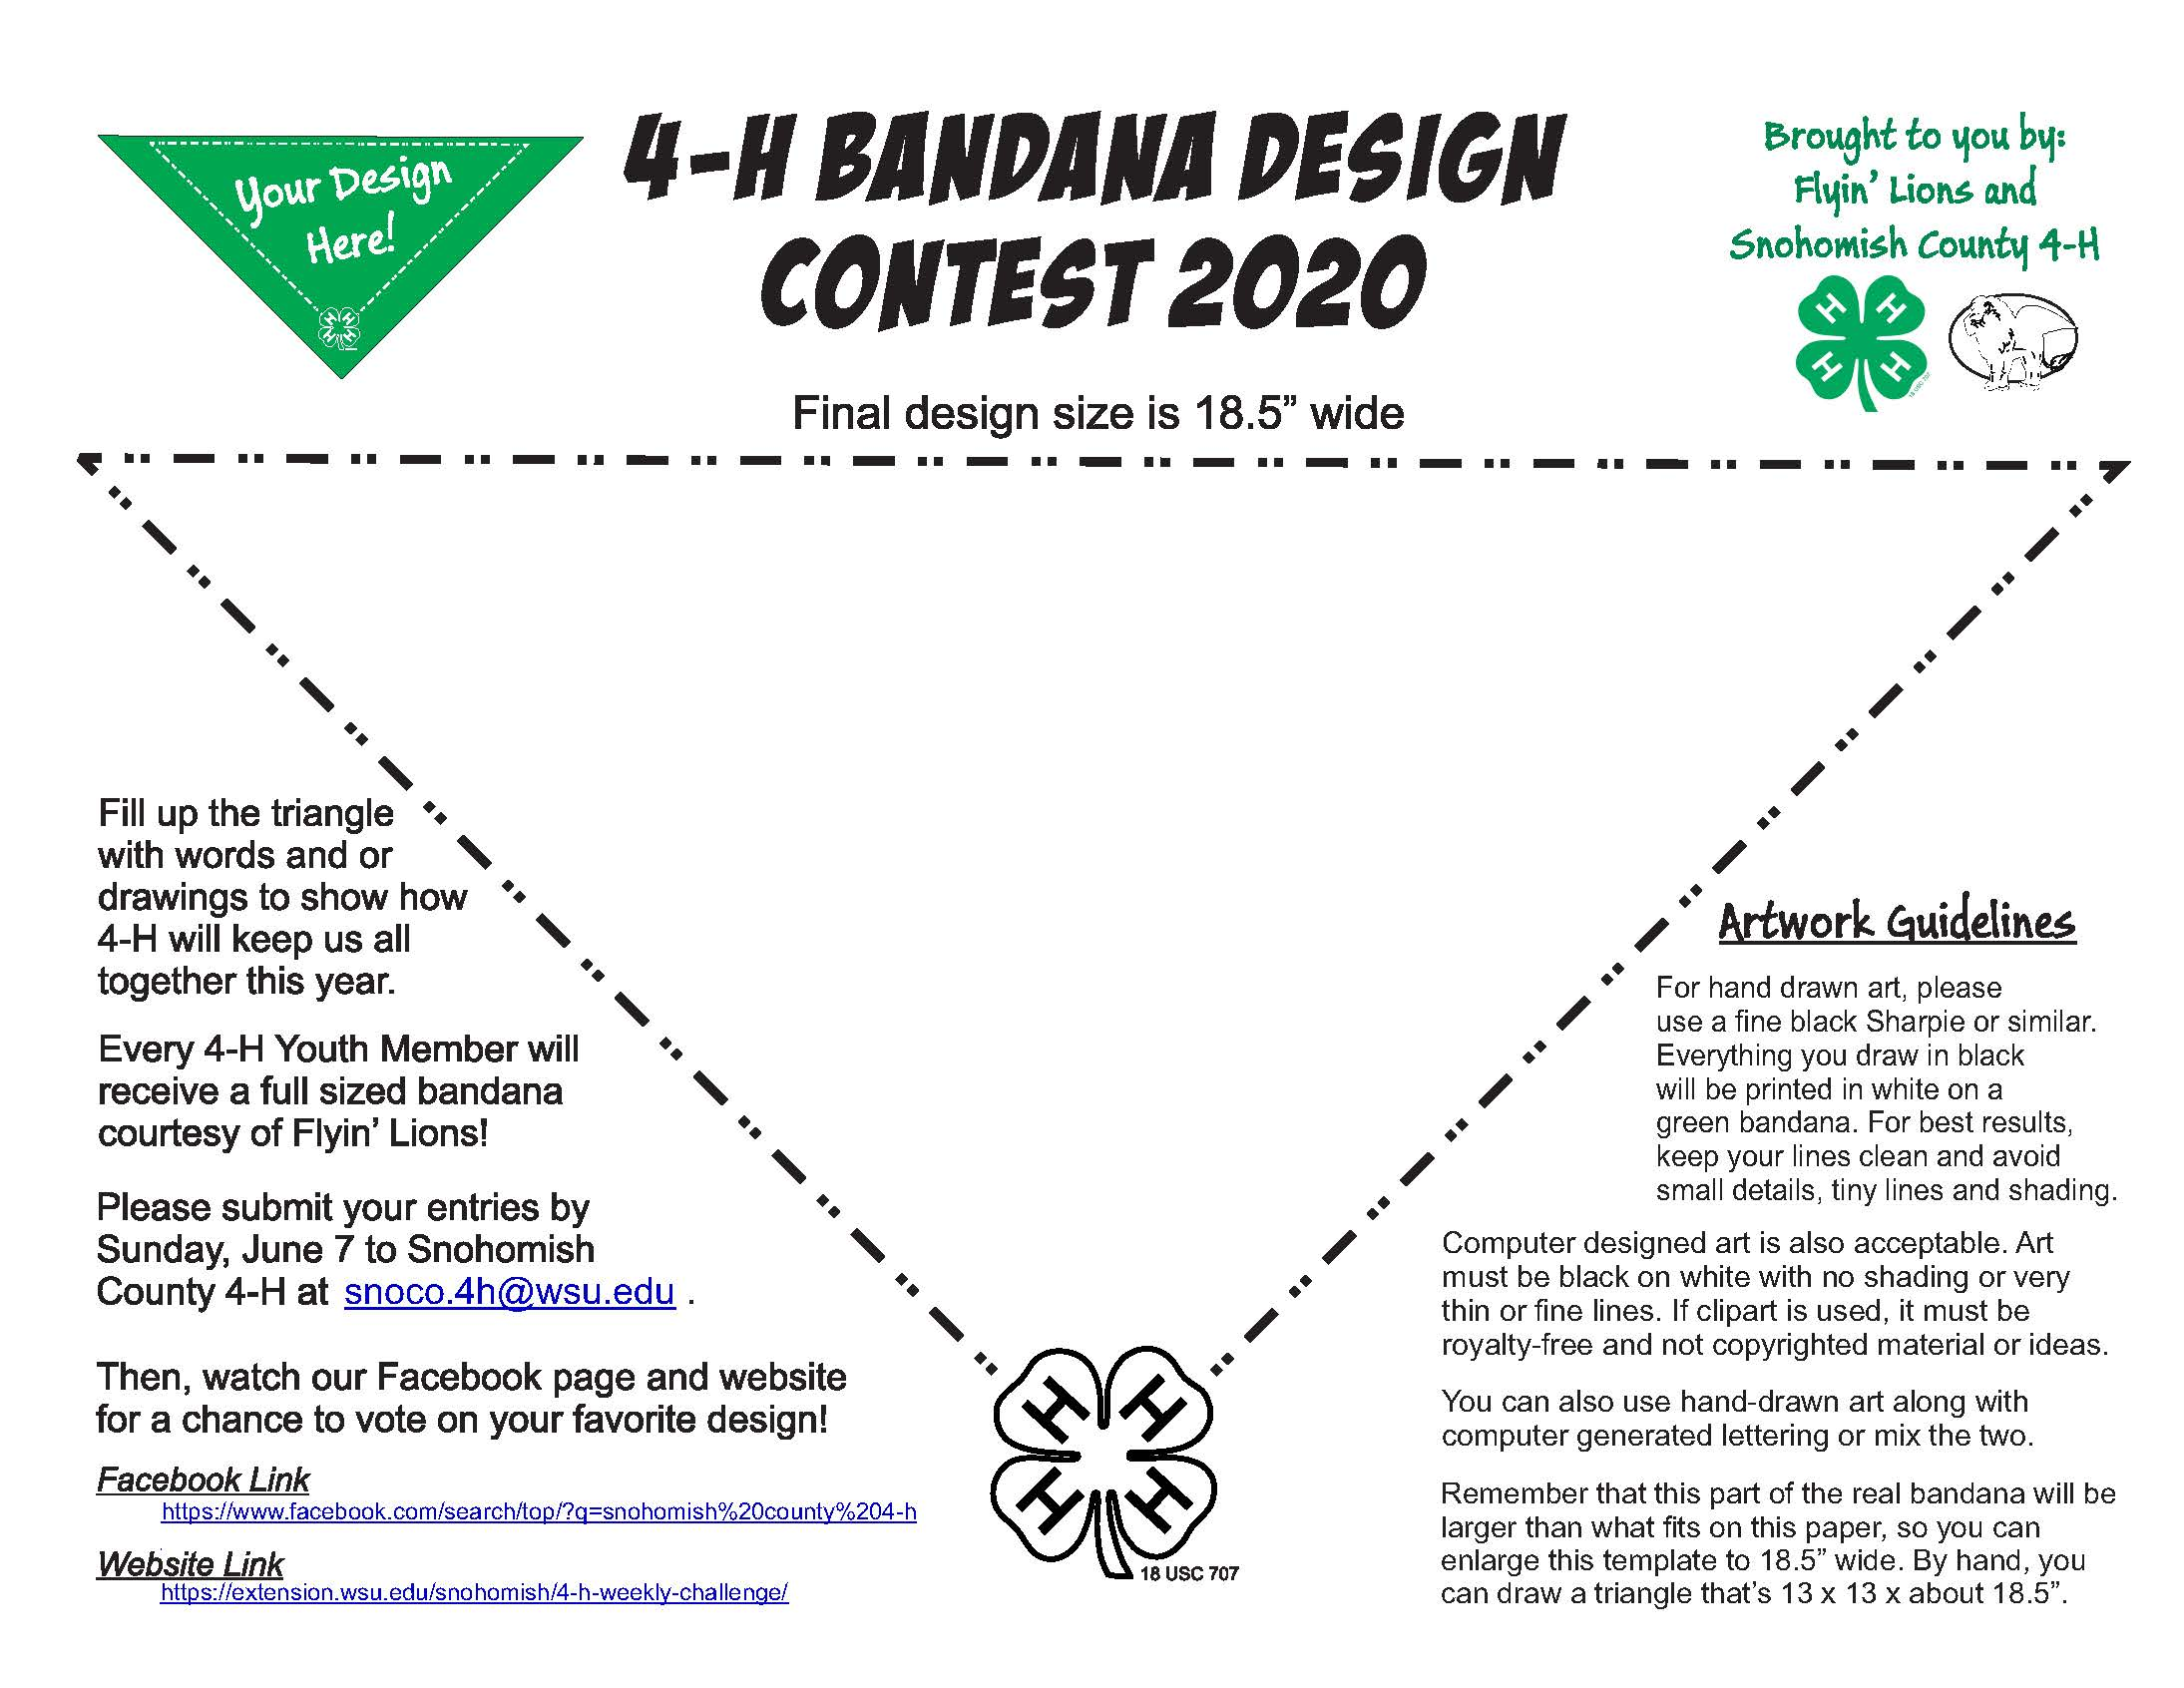 Instructions and triangular design space for 4-H bandana contest.